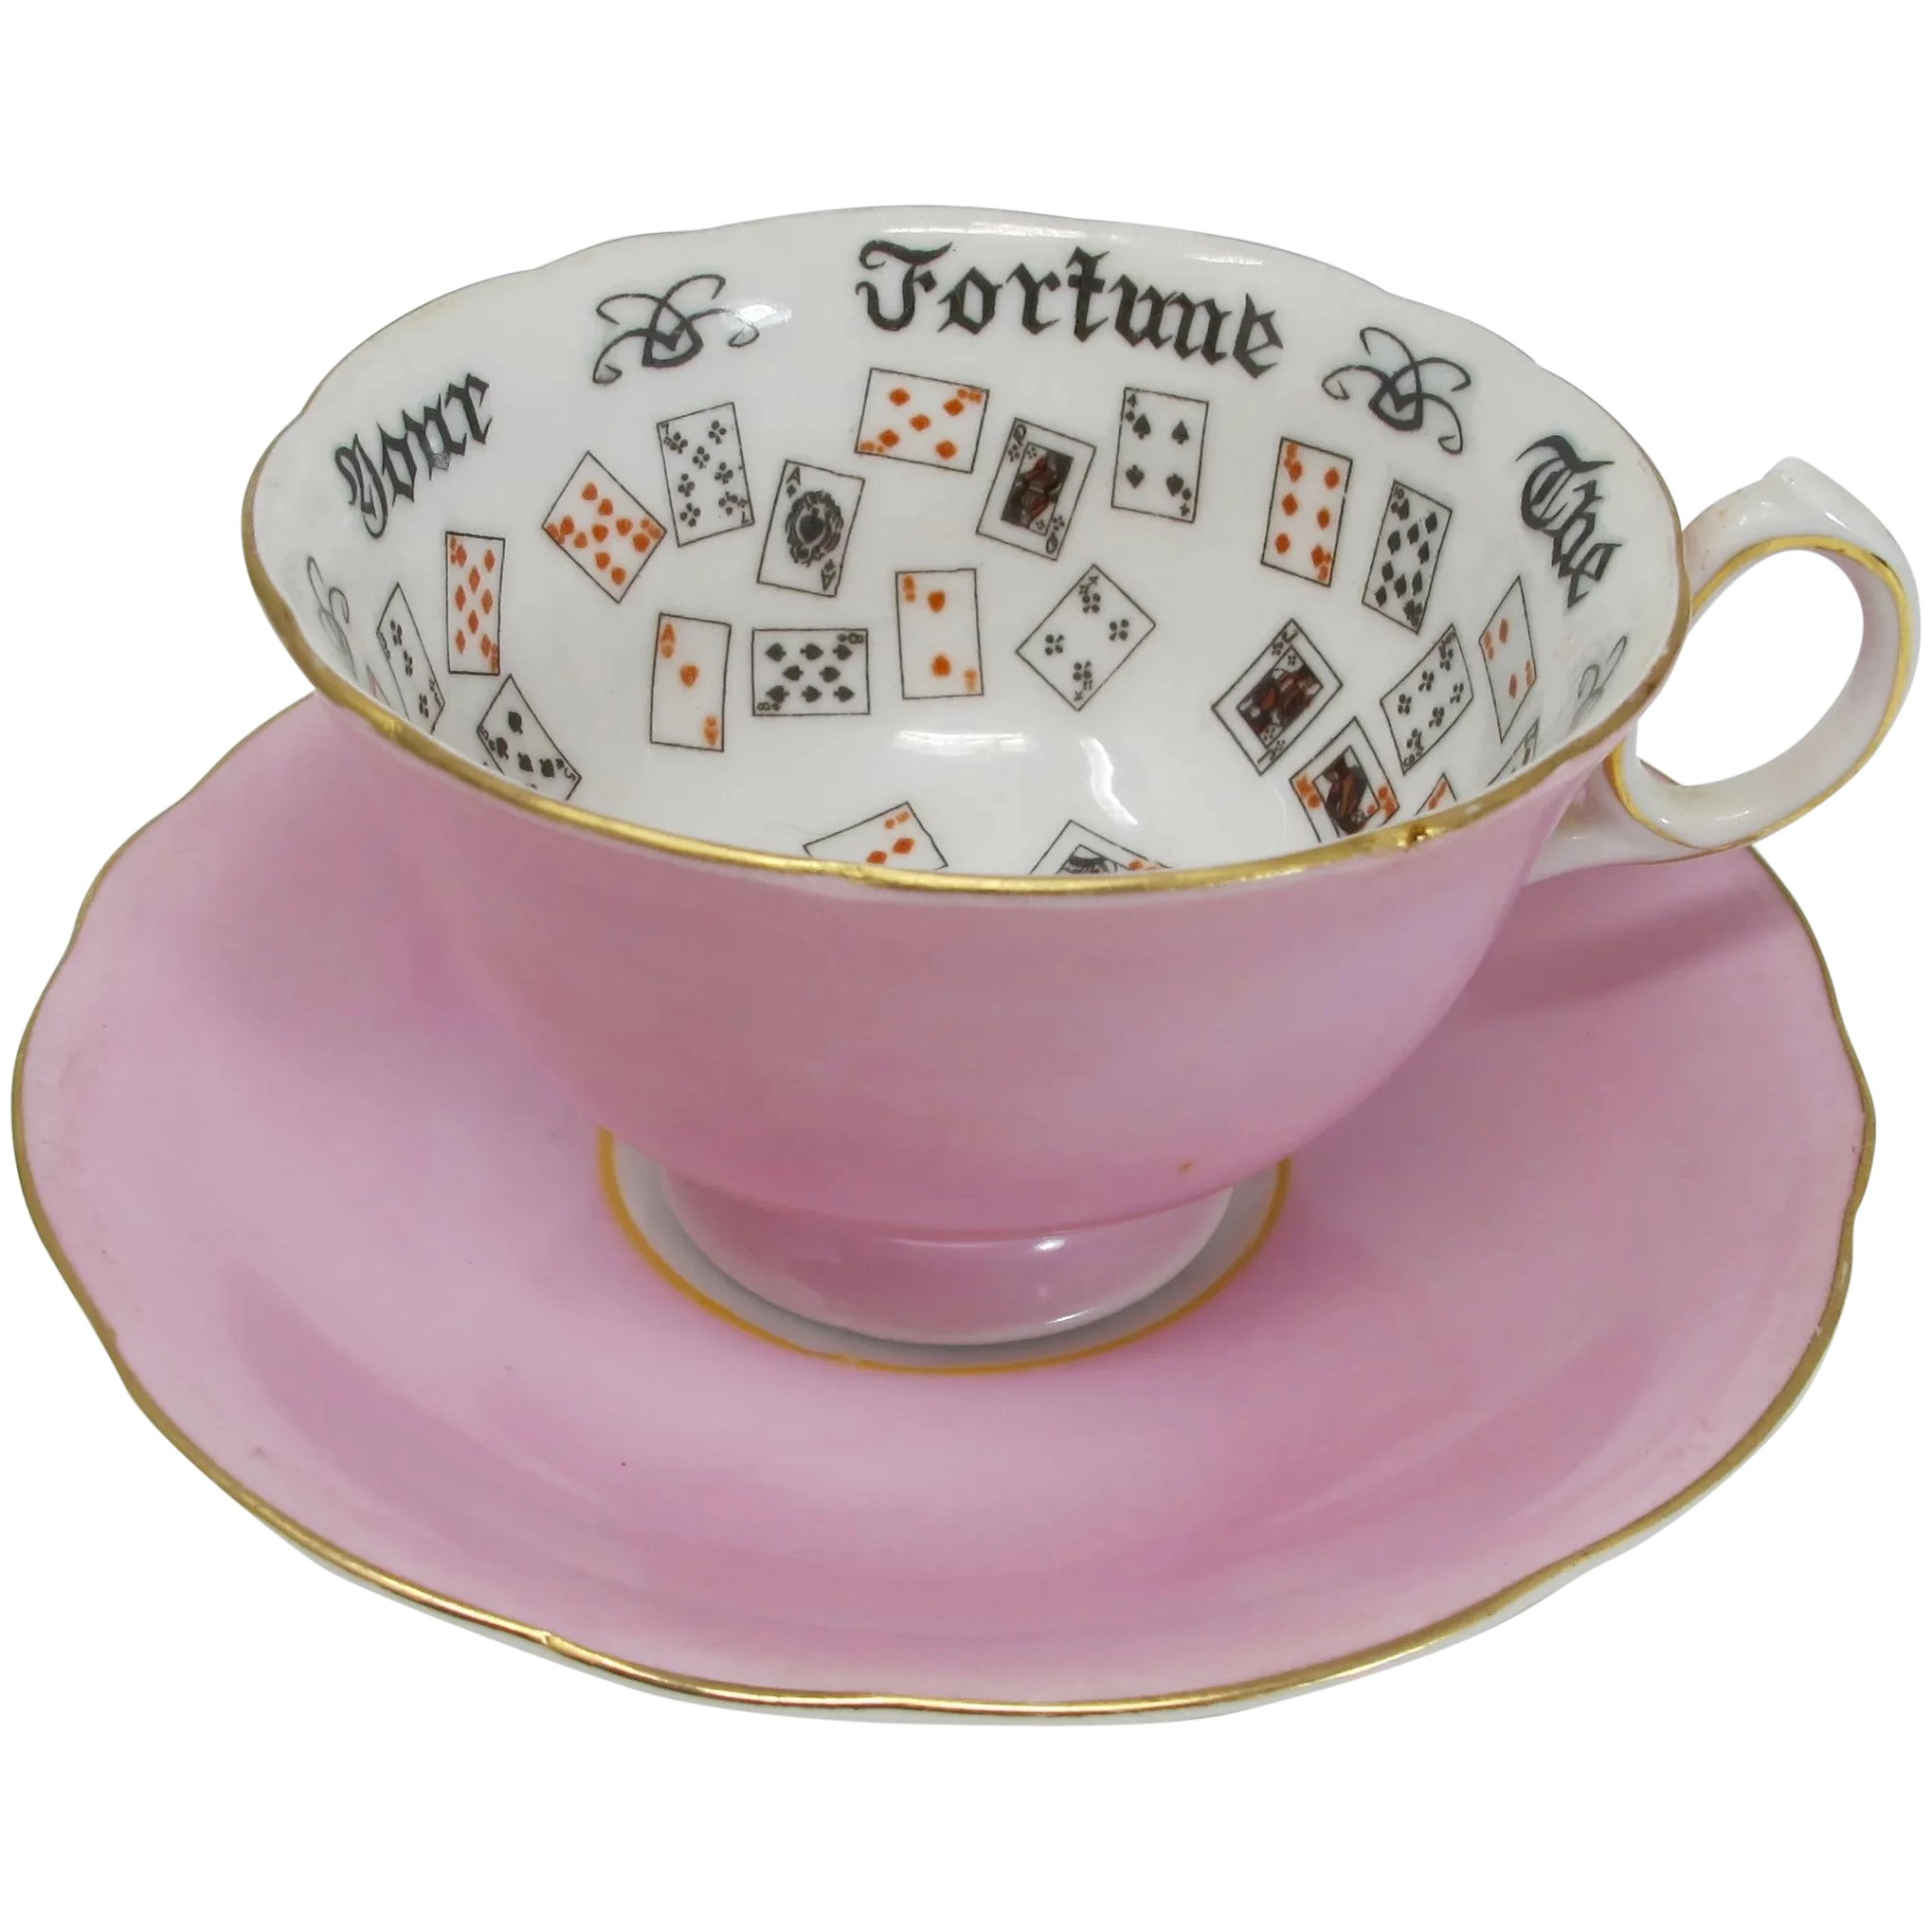 1920s Fortune Telling Teacup Saucer With Card Design Pzbaubles New Orleans Ruby Lane